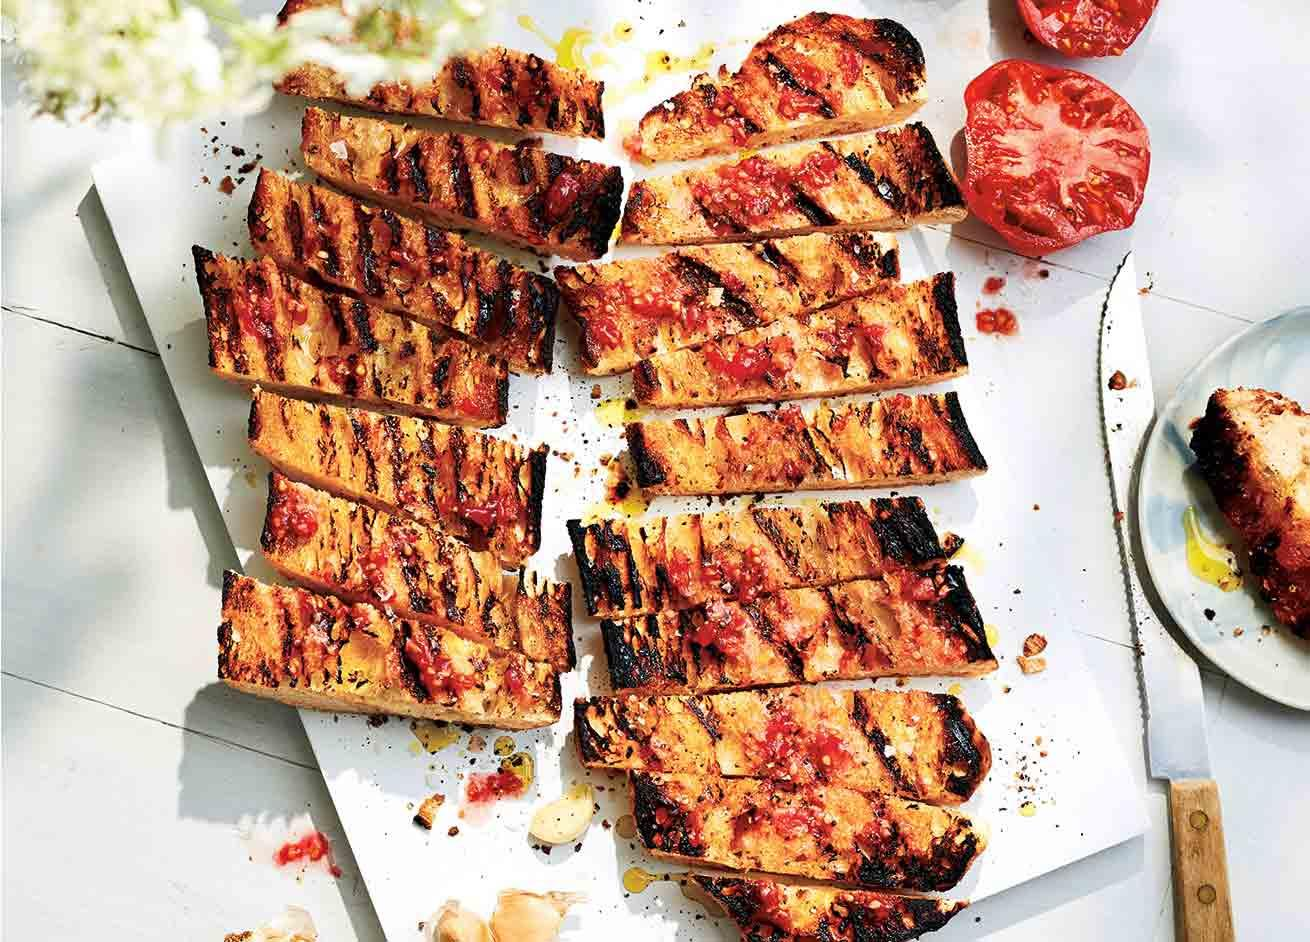 Garlicky Pan Con Tomate